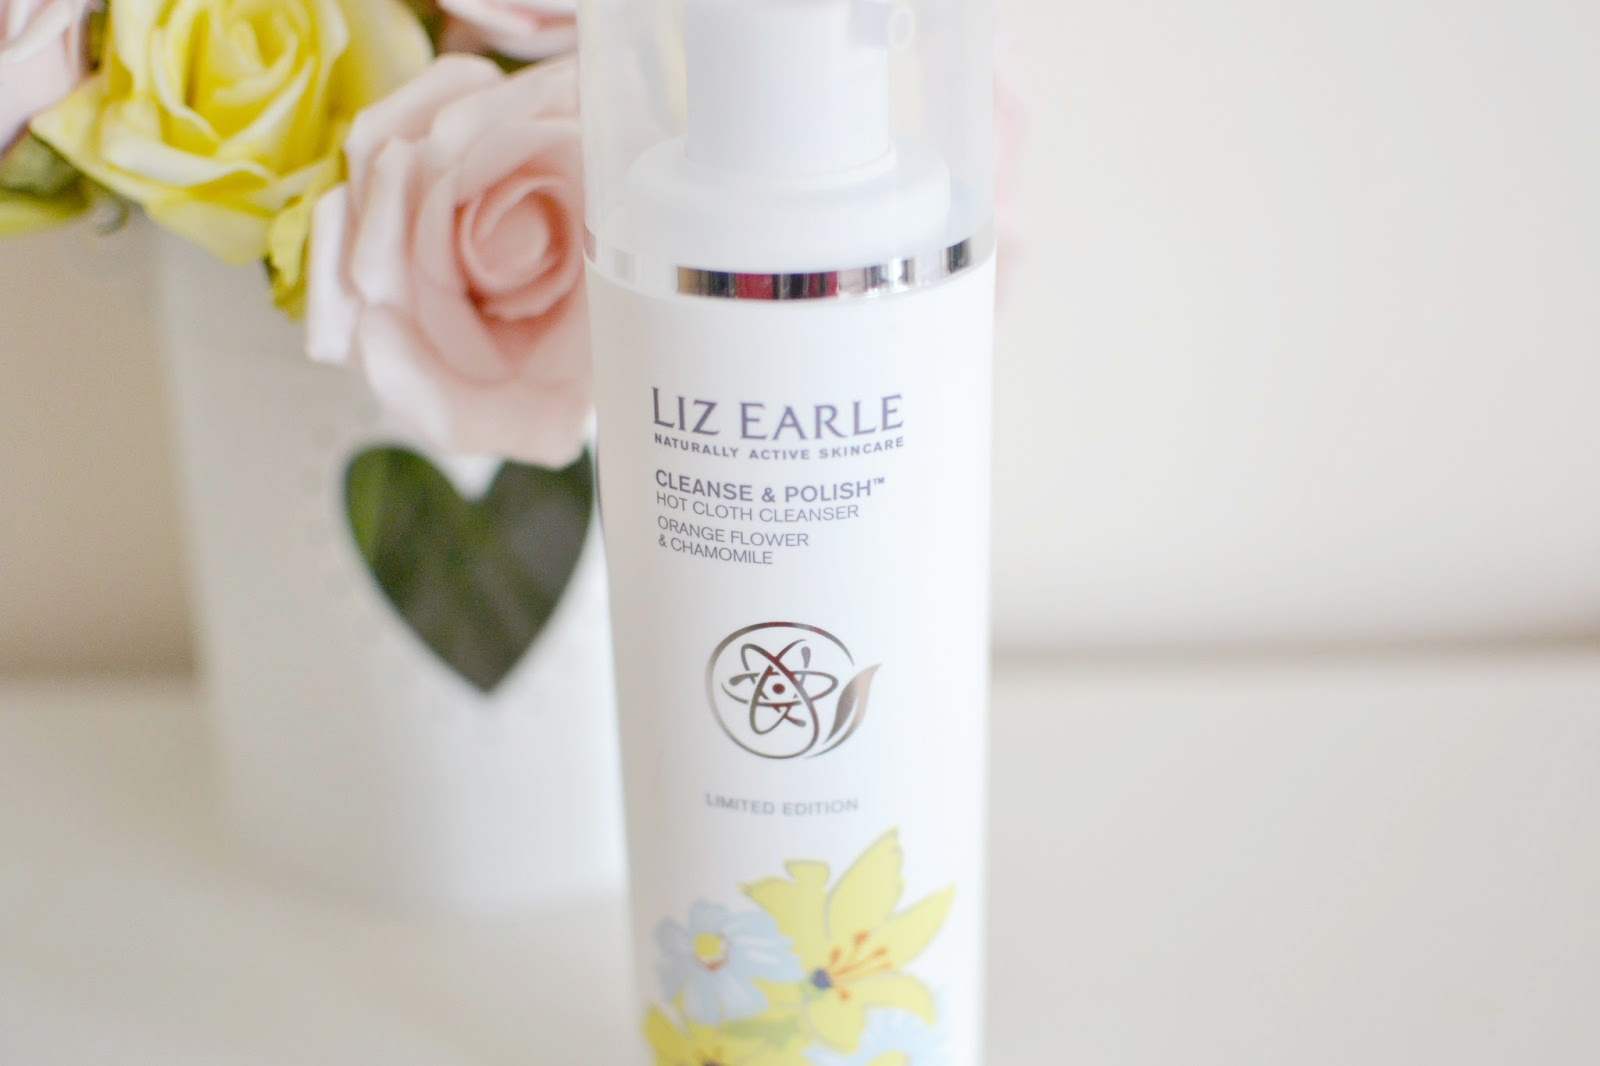 Liz Earle Orange Flower and Chamomile Cleanser